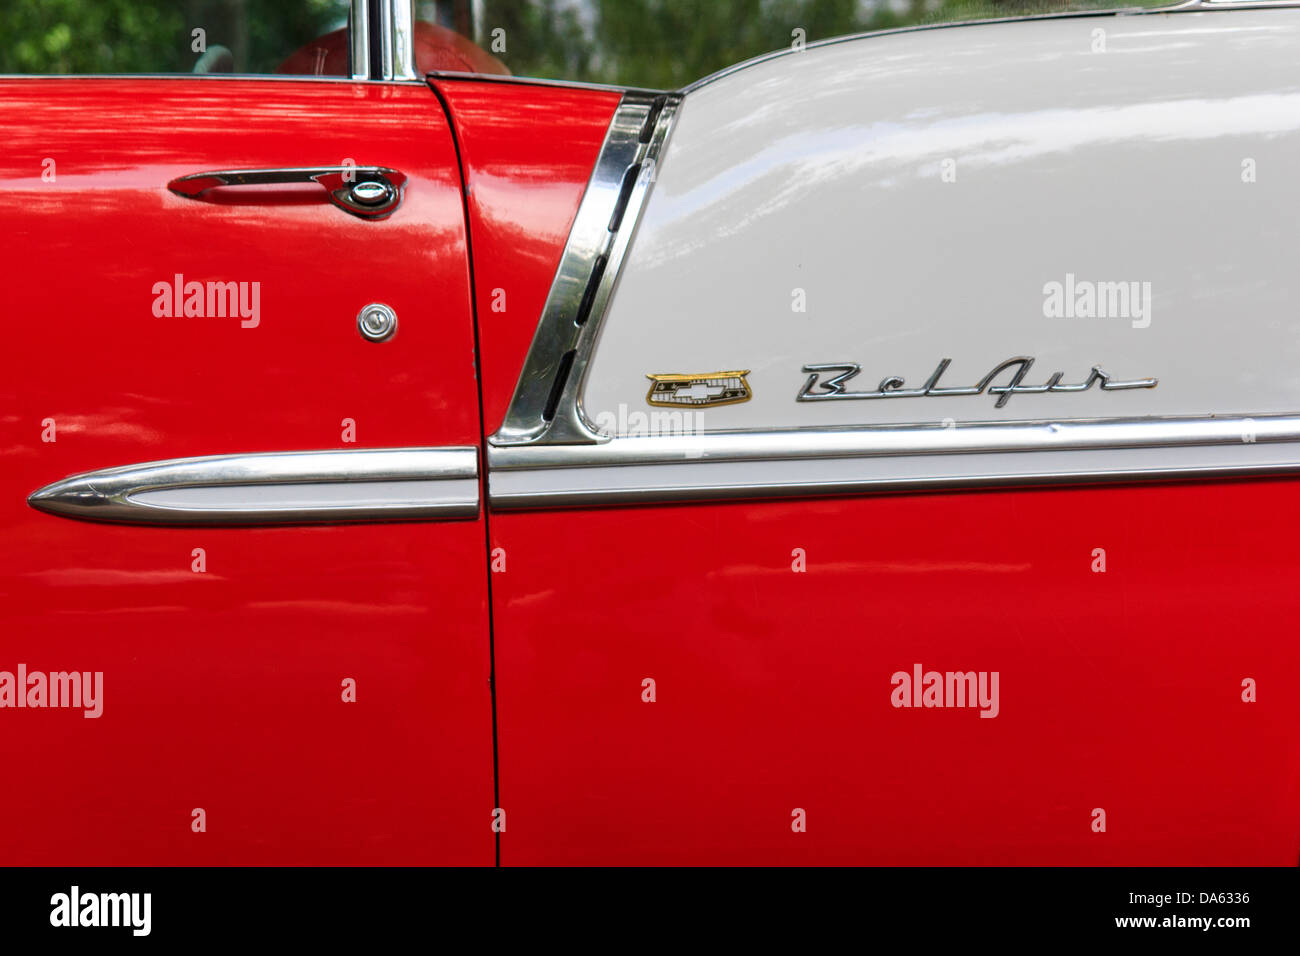 1955, Classic car, Chevrolet, Bel Air, General Motors, New Braunfels, old car, red, white, Texas, USA, United States, - Stock Image